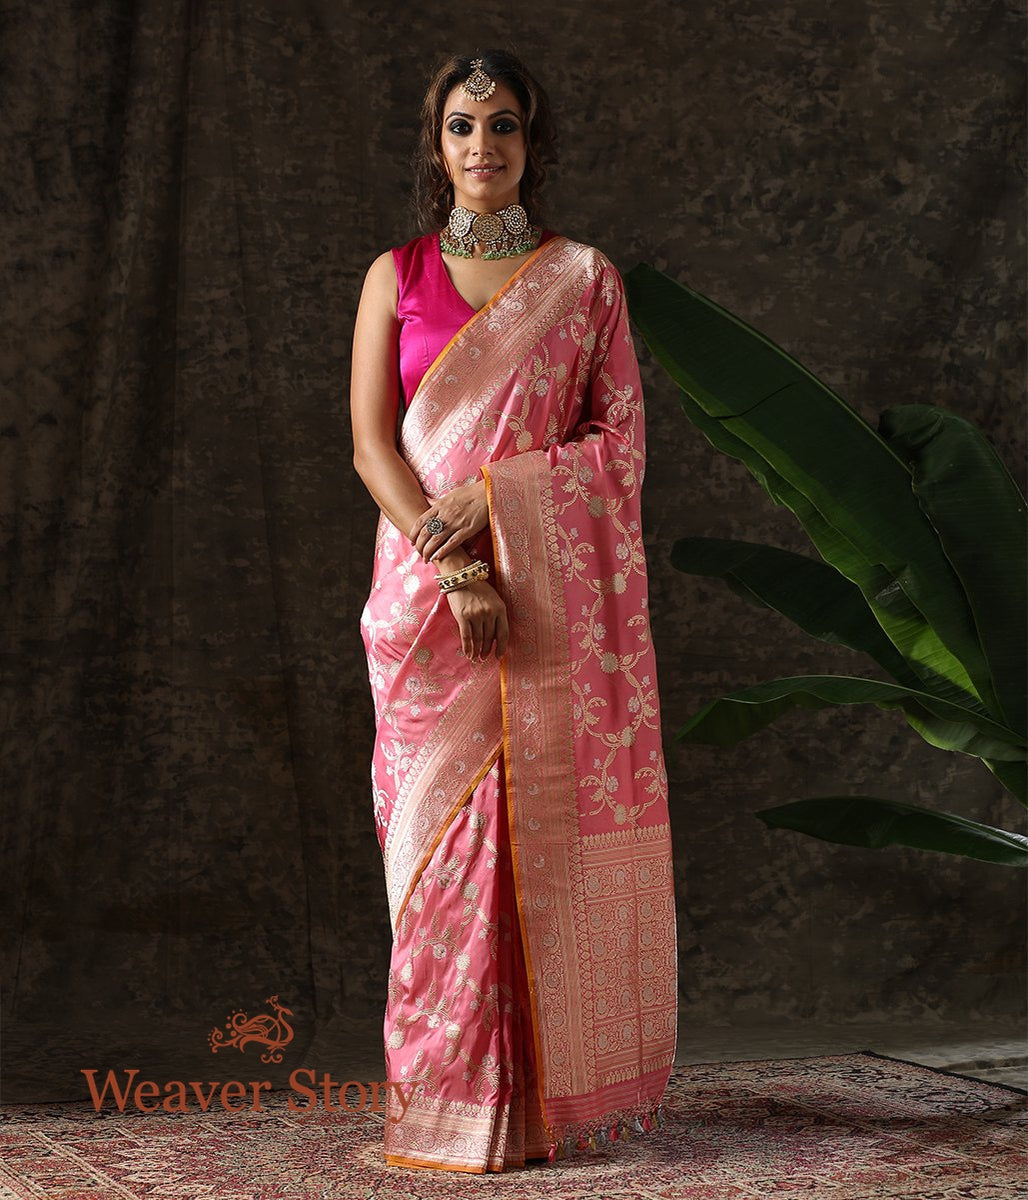 Handwoven Light Pink Sona Rupa Jangla Saree